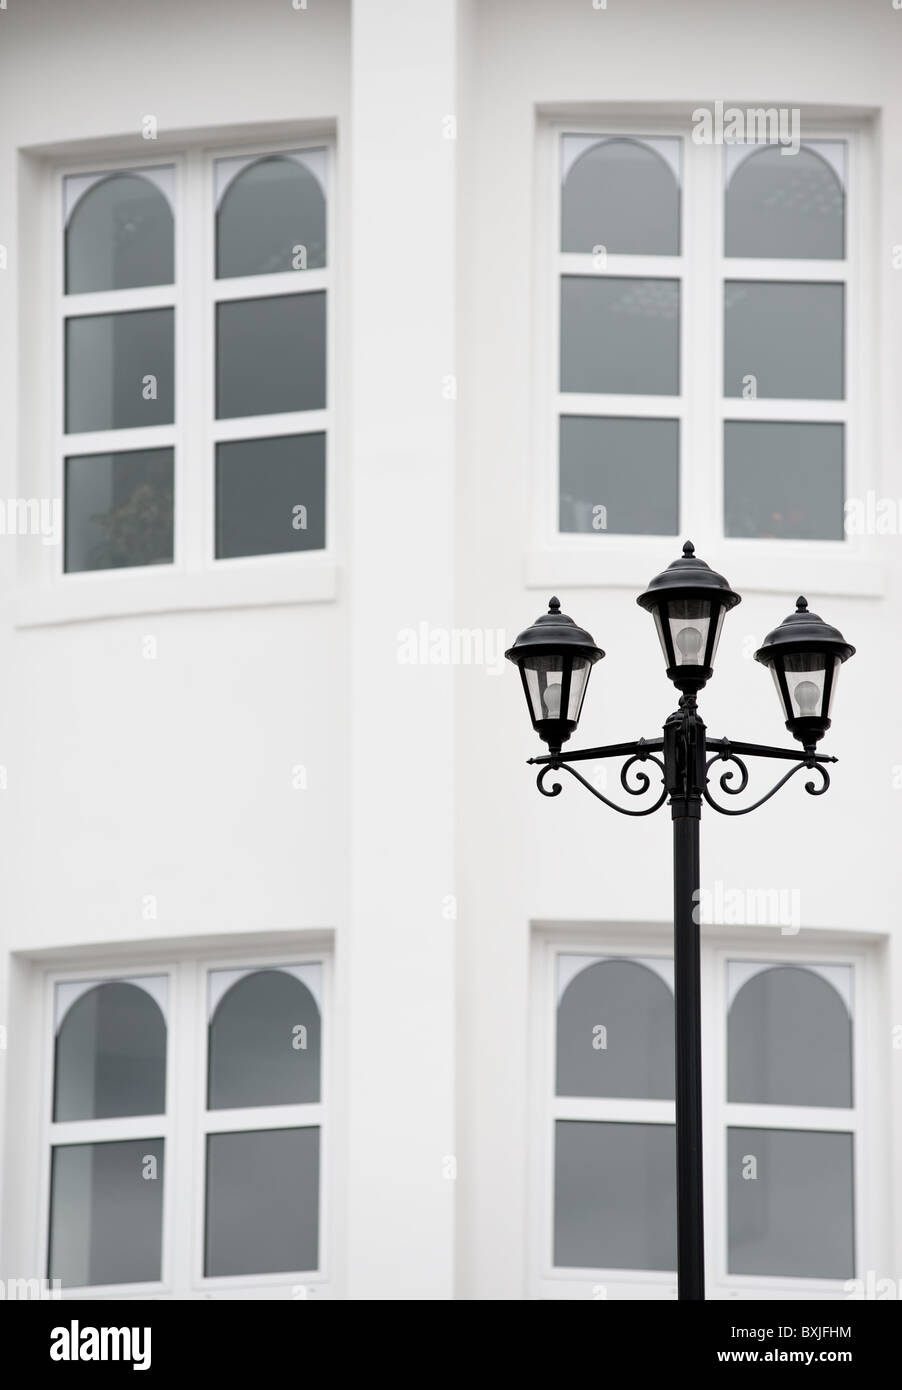 antiqued forged black street lamp against white wall with four arched windows - Stock Image